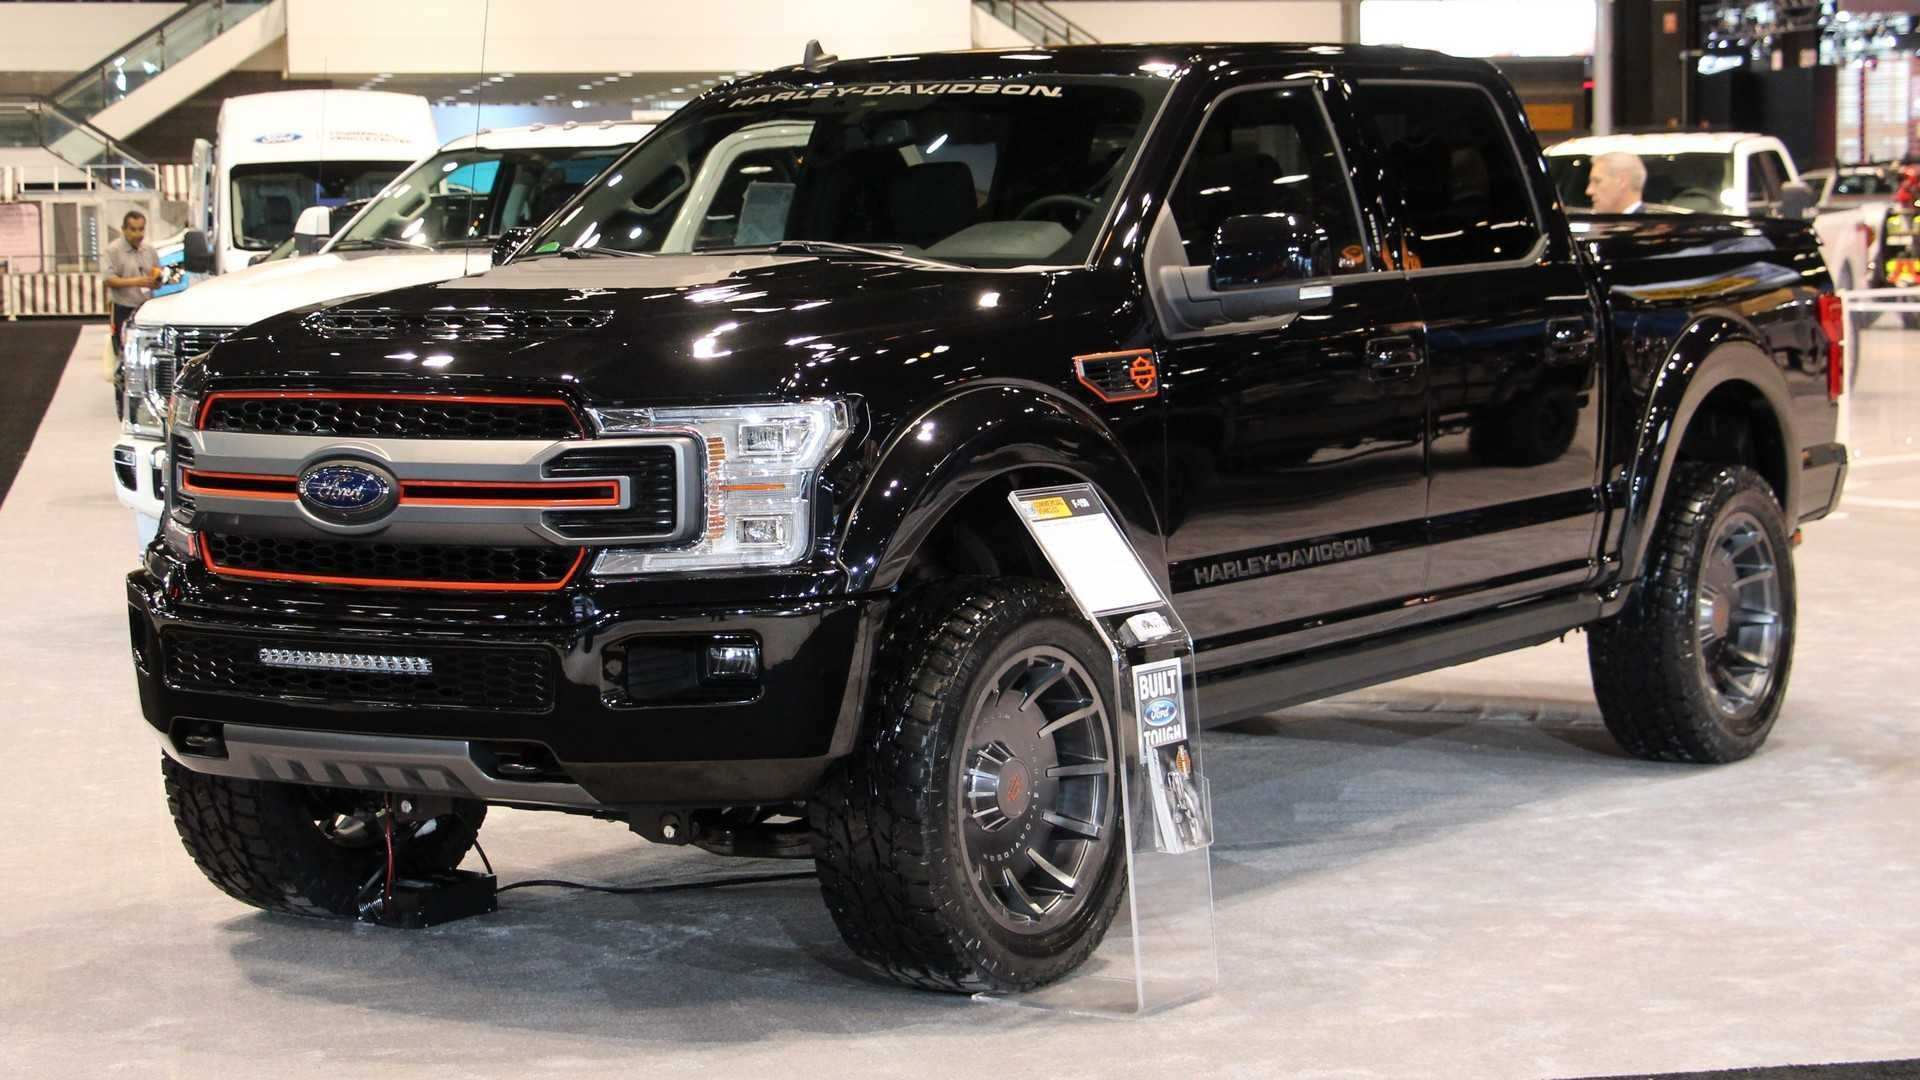 83 The Best 2020 Ford 150 Images